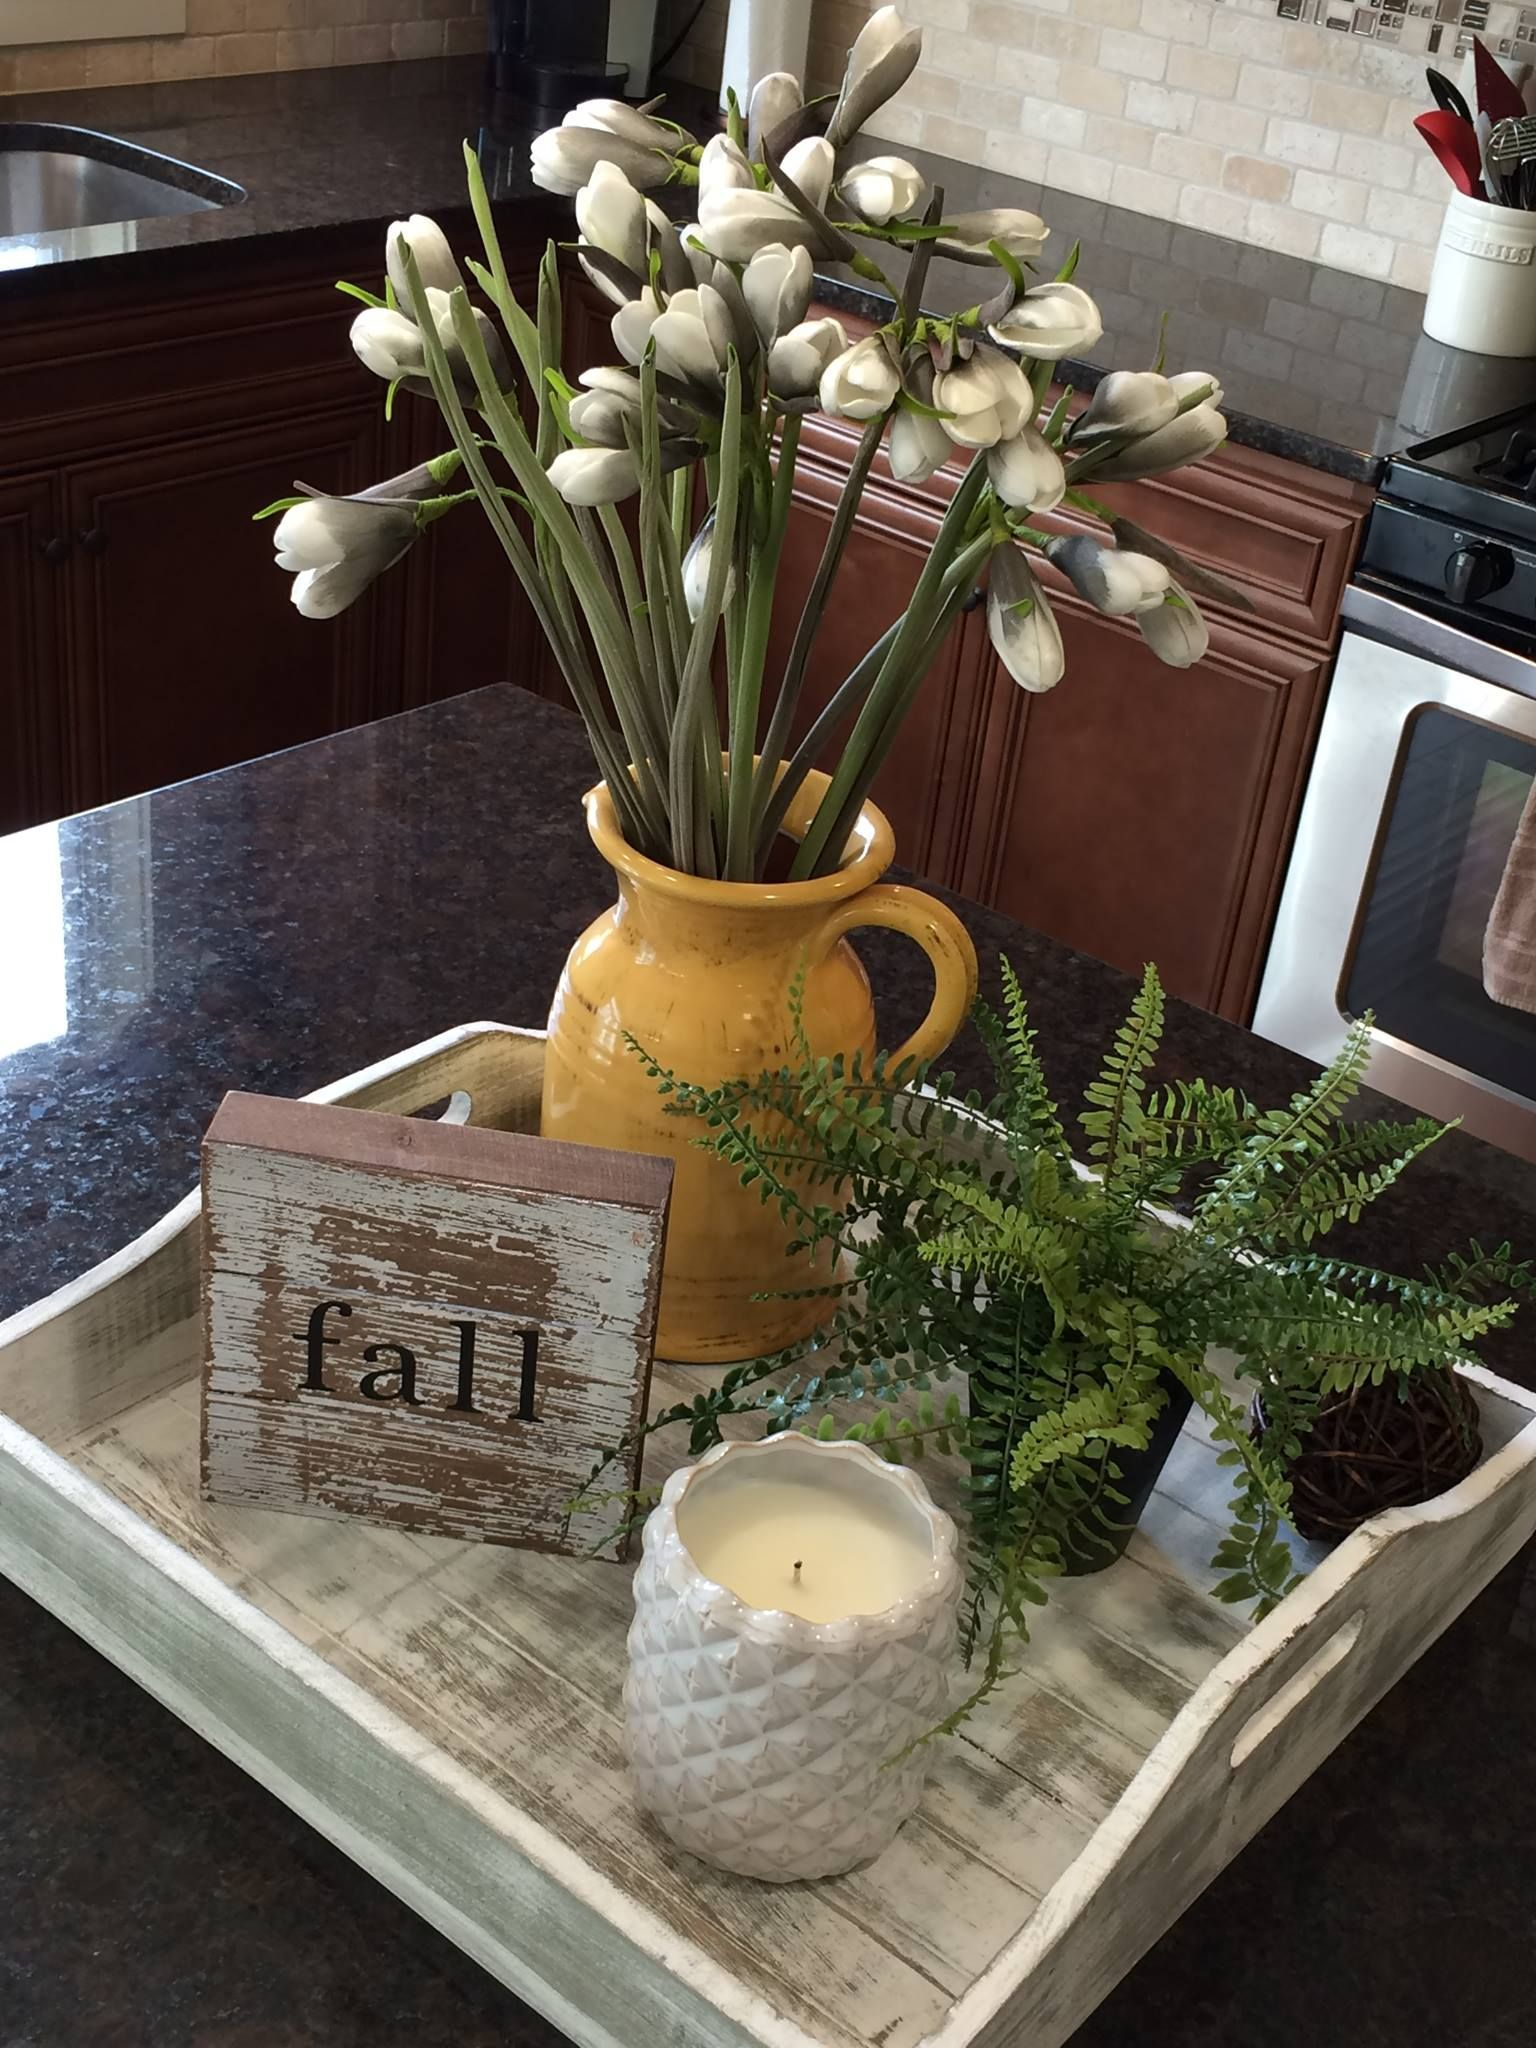 Love this decor idea for a kitchen island or peninsula! Tray